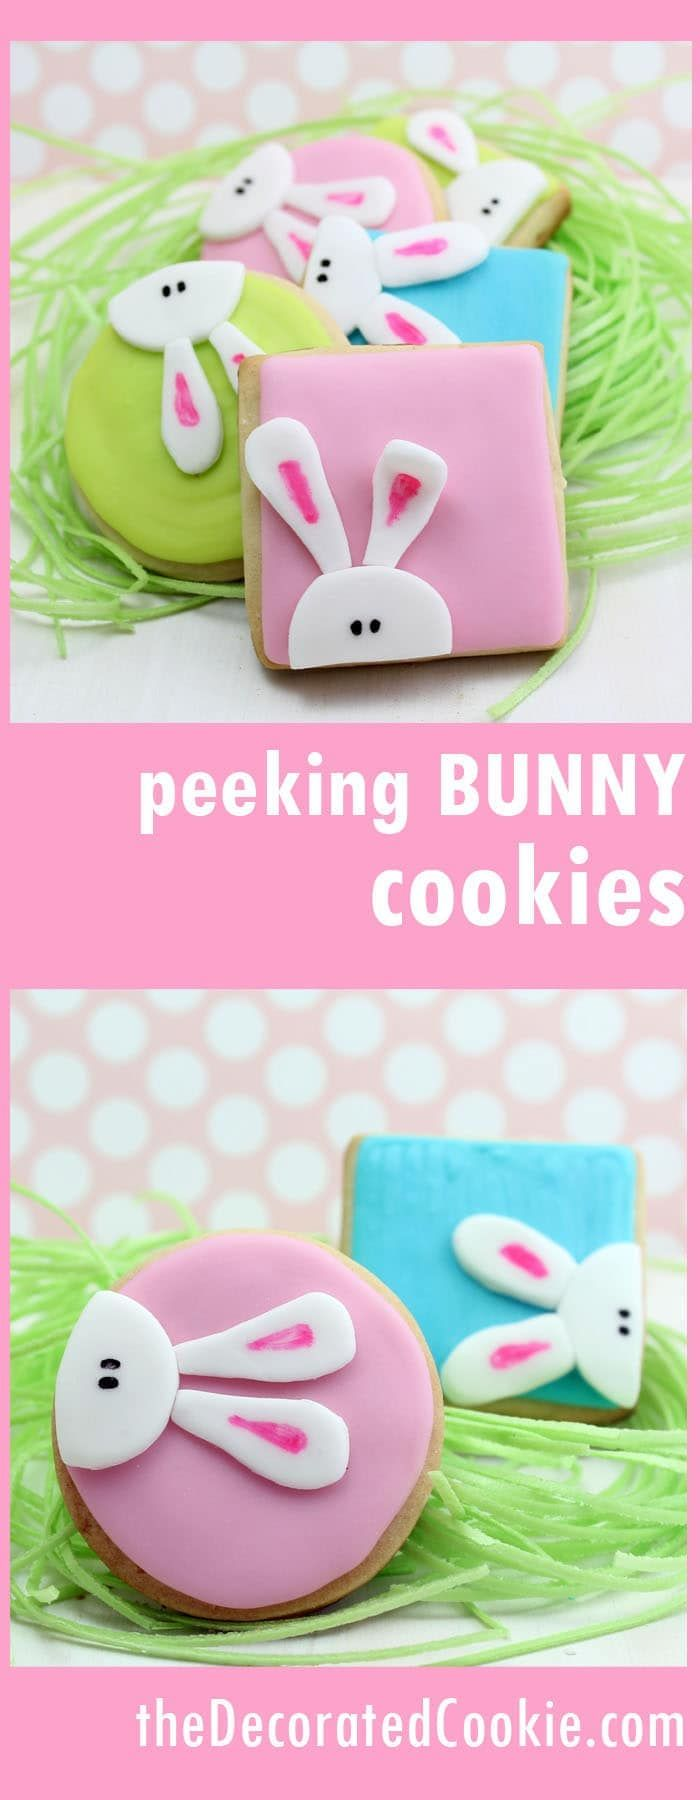 How to decorate peeking bunny Easter cookies. #Easter #bunny #Cookies